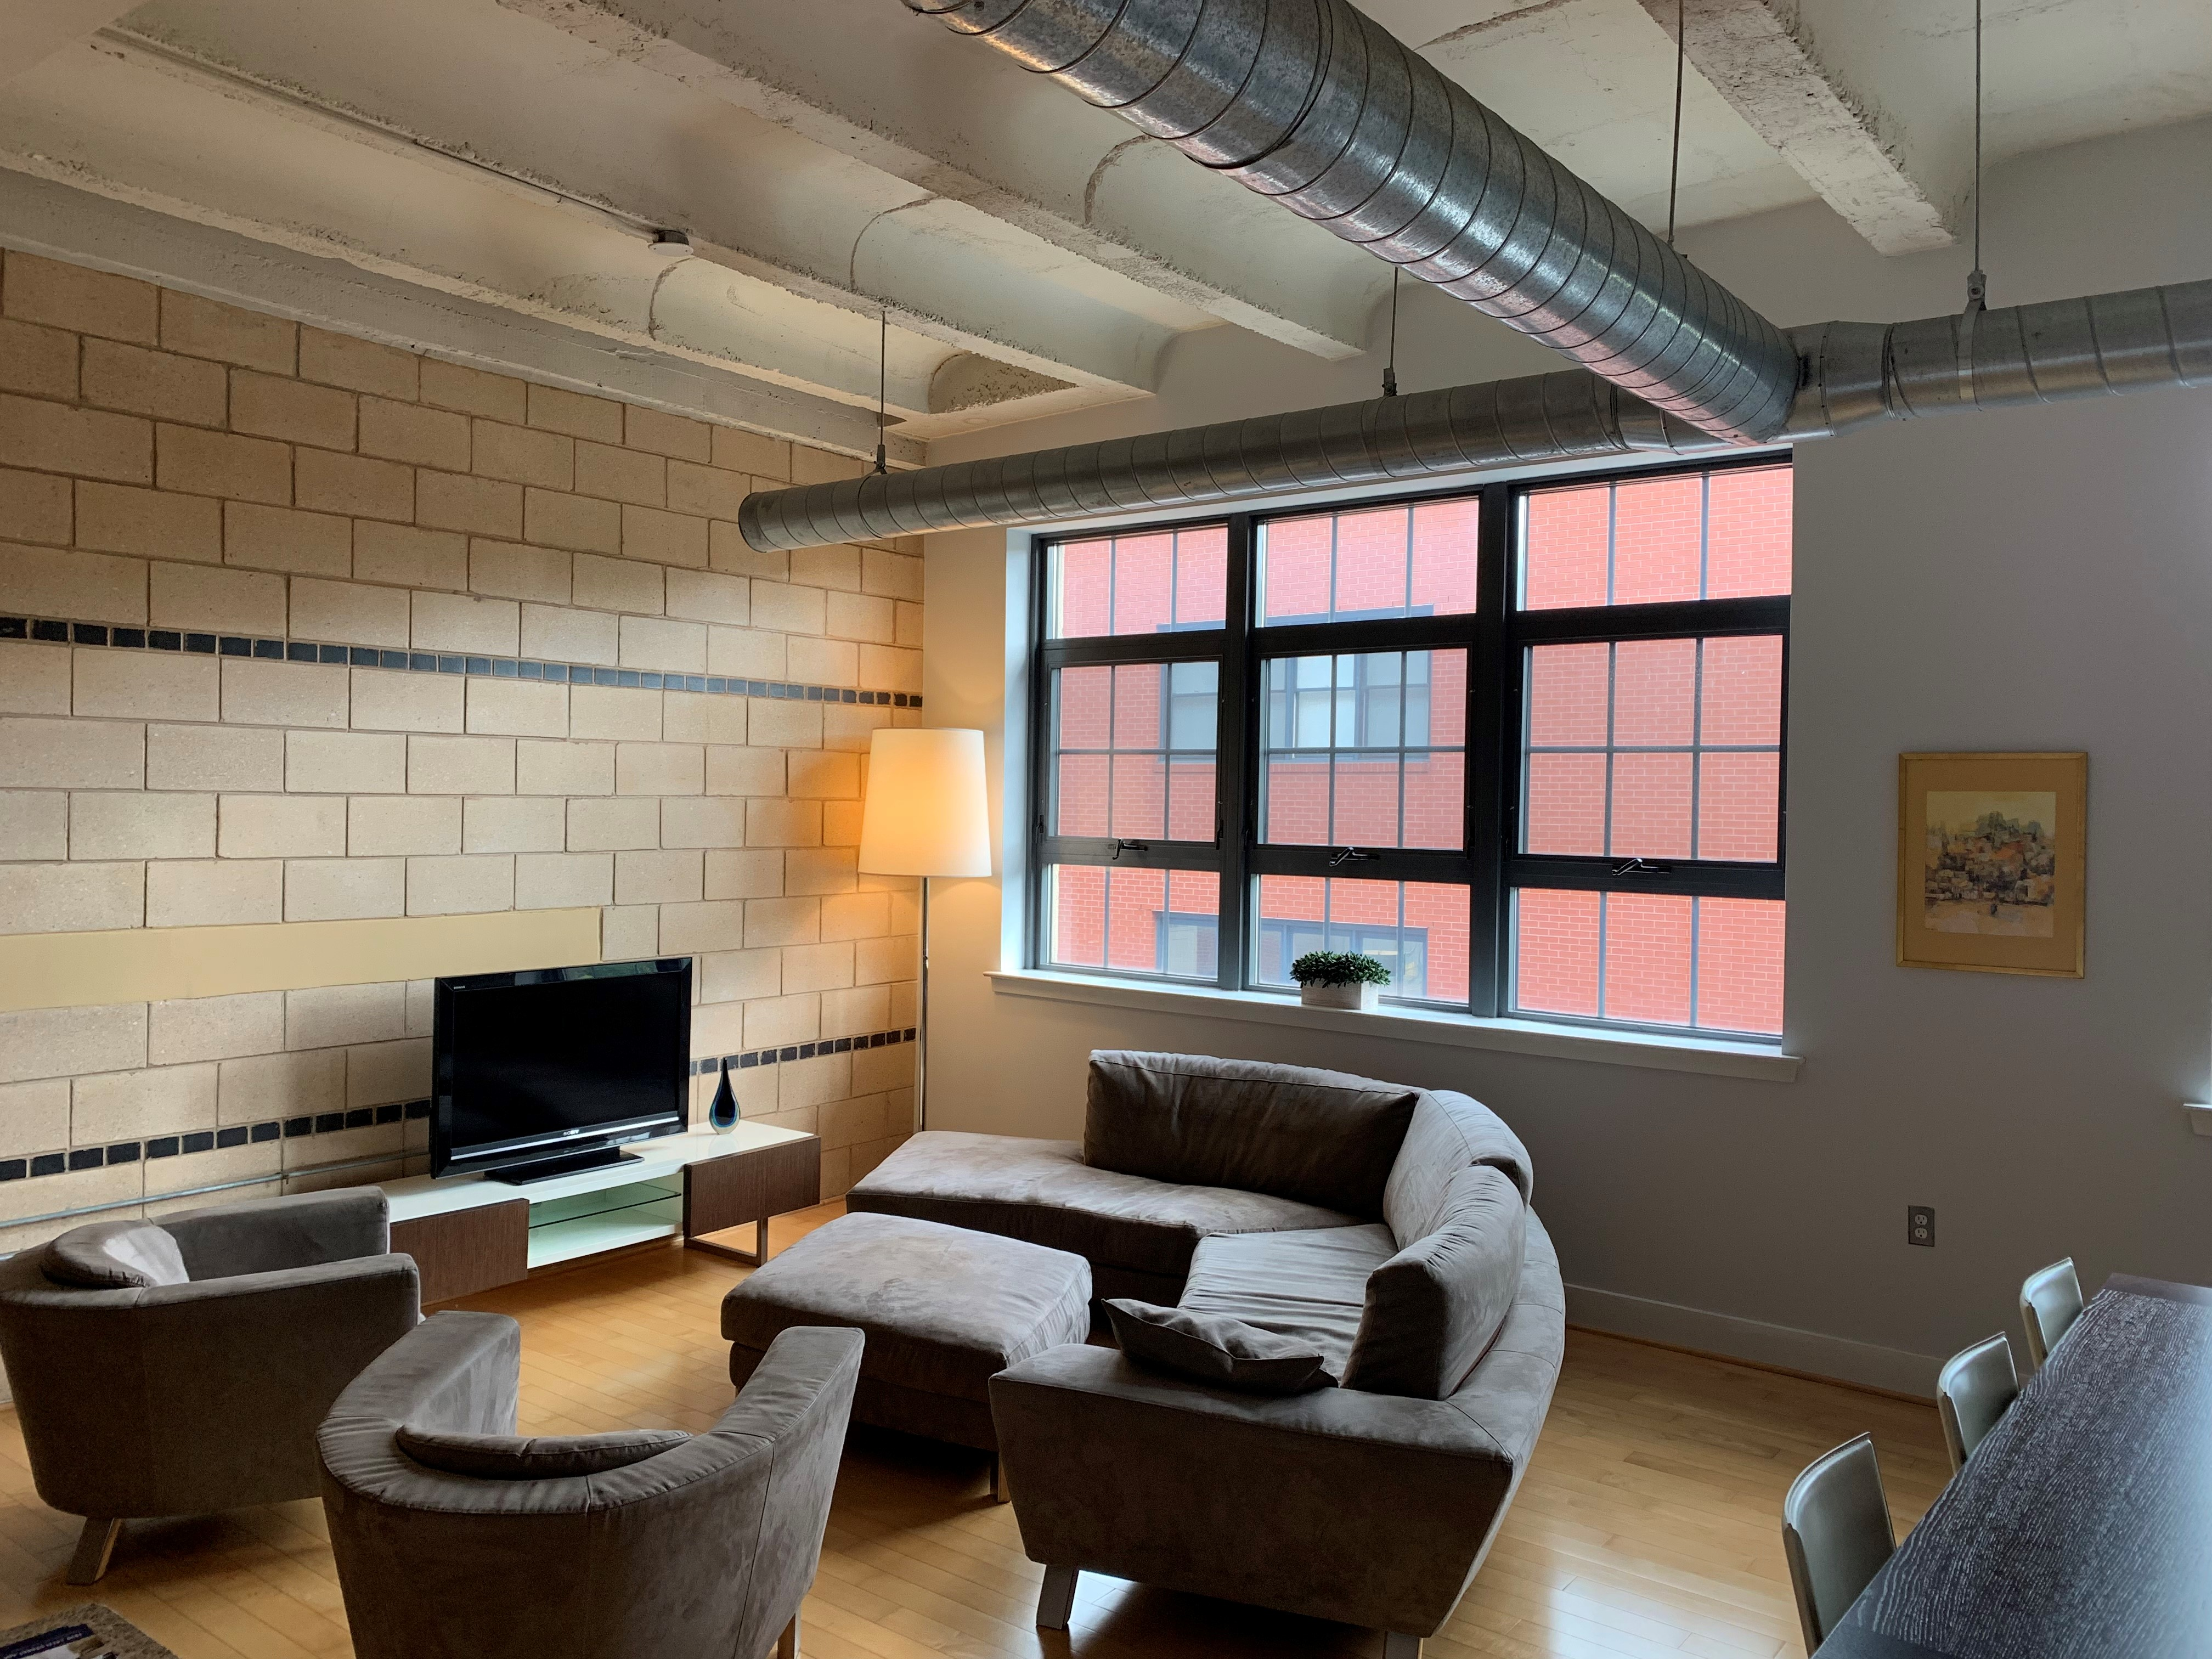 Washington, DC Lofts For Sale. Artyom Shmatko Realtor. Washington, DC Lofts For Sale. Exposed Ducts, Beams. Industrial detail. Concrete and wood floors. Modern Condos